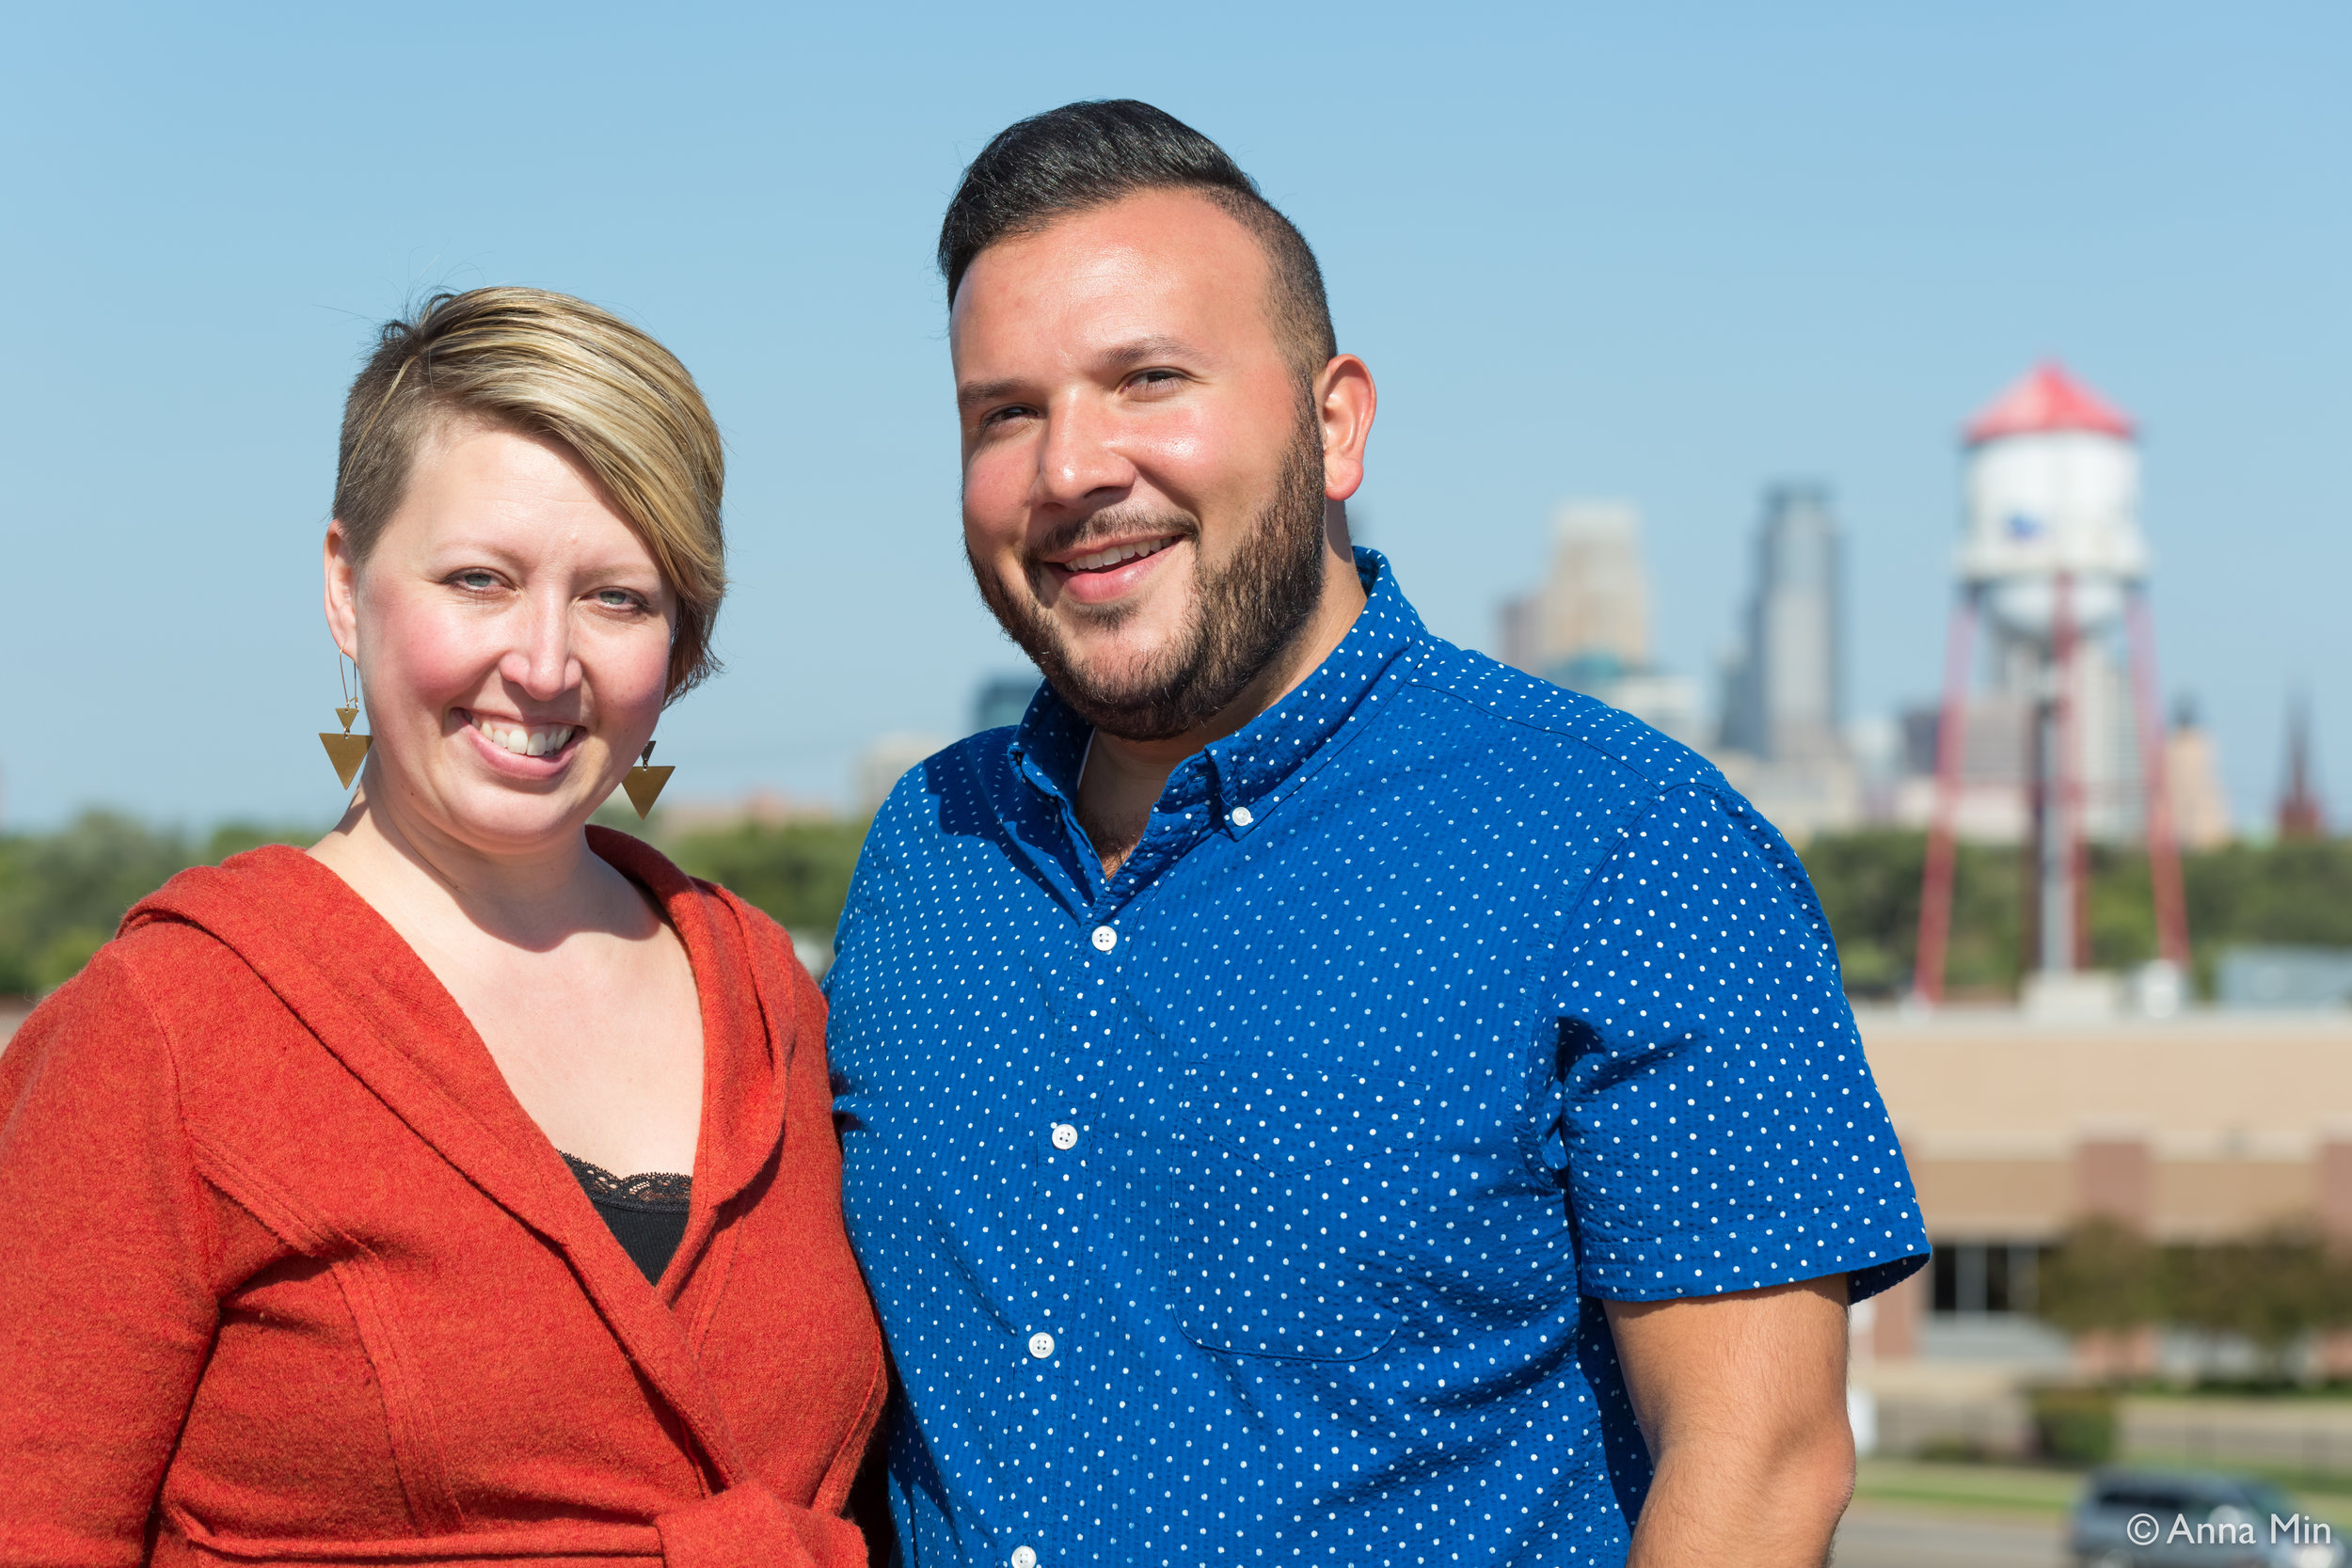 Teams make us better + Dynamic leaders are needed - Team Dynamics Co-Founders: Trina C. Olson + Alfonso T. Wenker